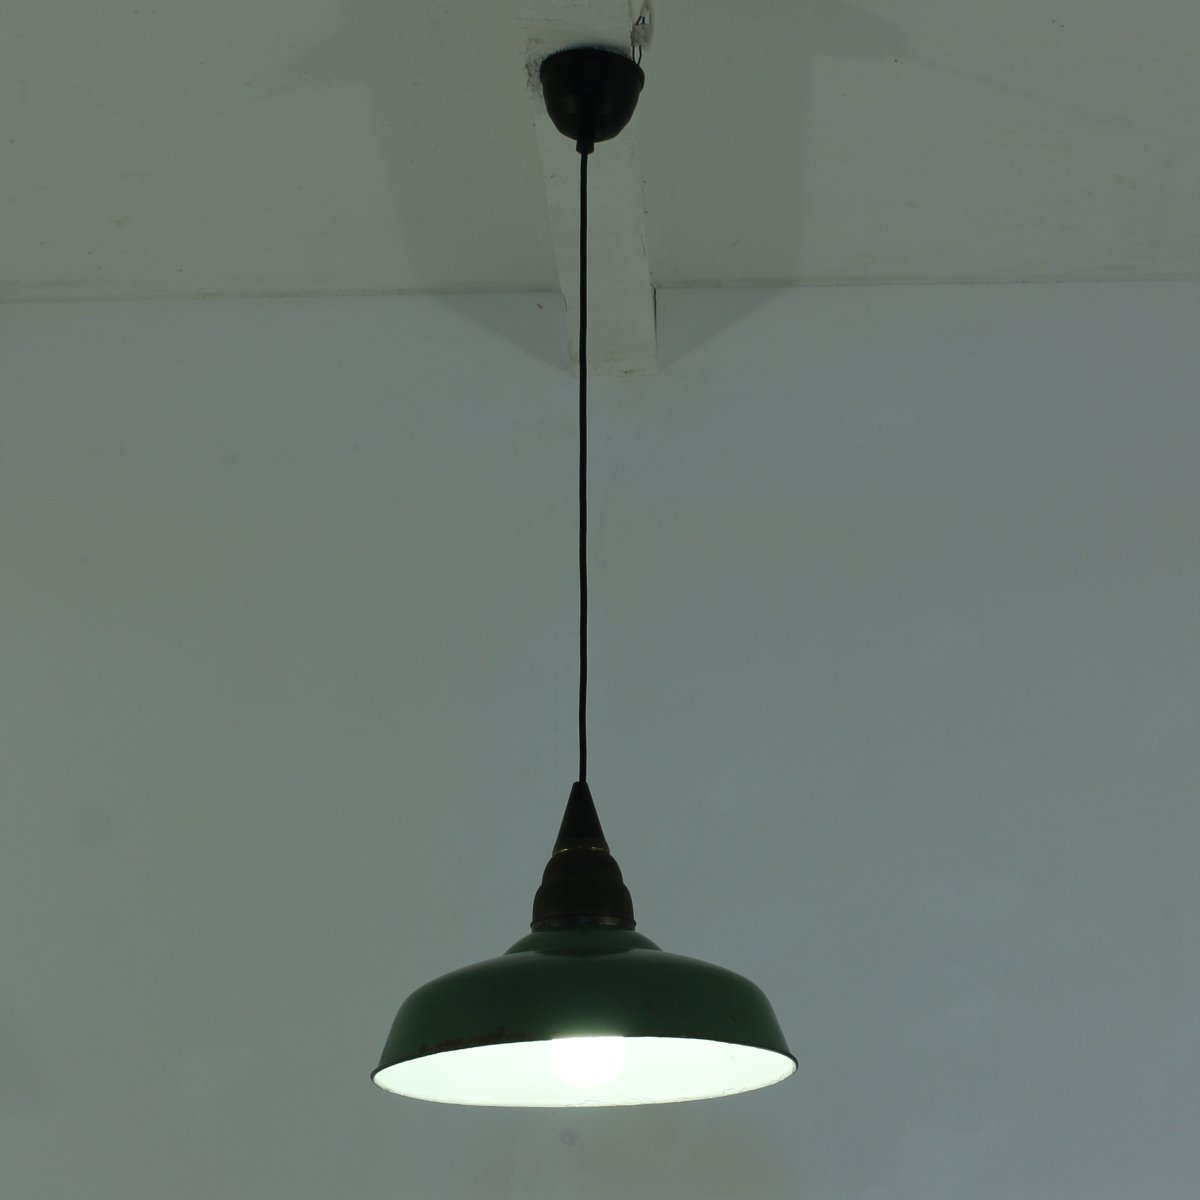 Vintage industrial green workshop pendant lamp 1930s for sale at price per piece arubaitofo Choice Image